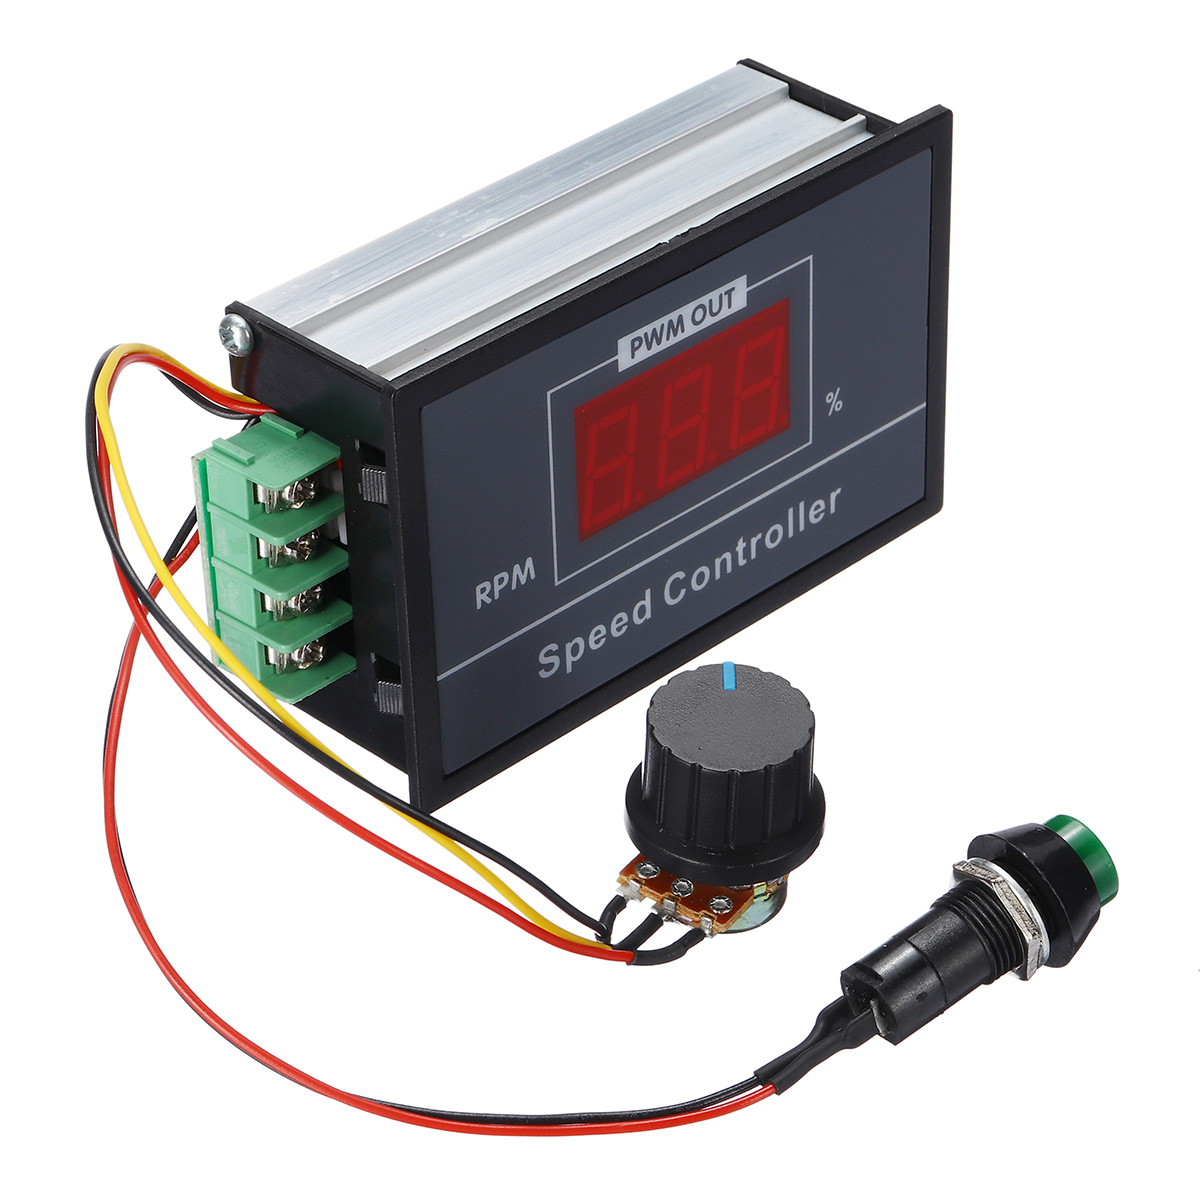 Stepless DC Digital Display Motor Speed Controller with Momentary Start//Stop Switch//Speed Control Potentiometer DC6-60V 6V 12V 24V 48V 30A PWM DC Motor Speed Controller